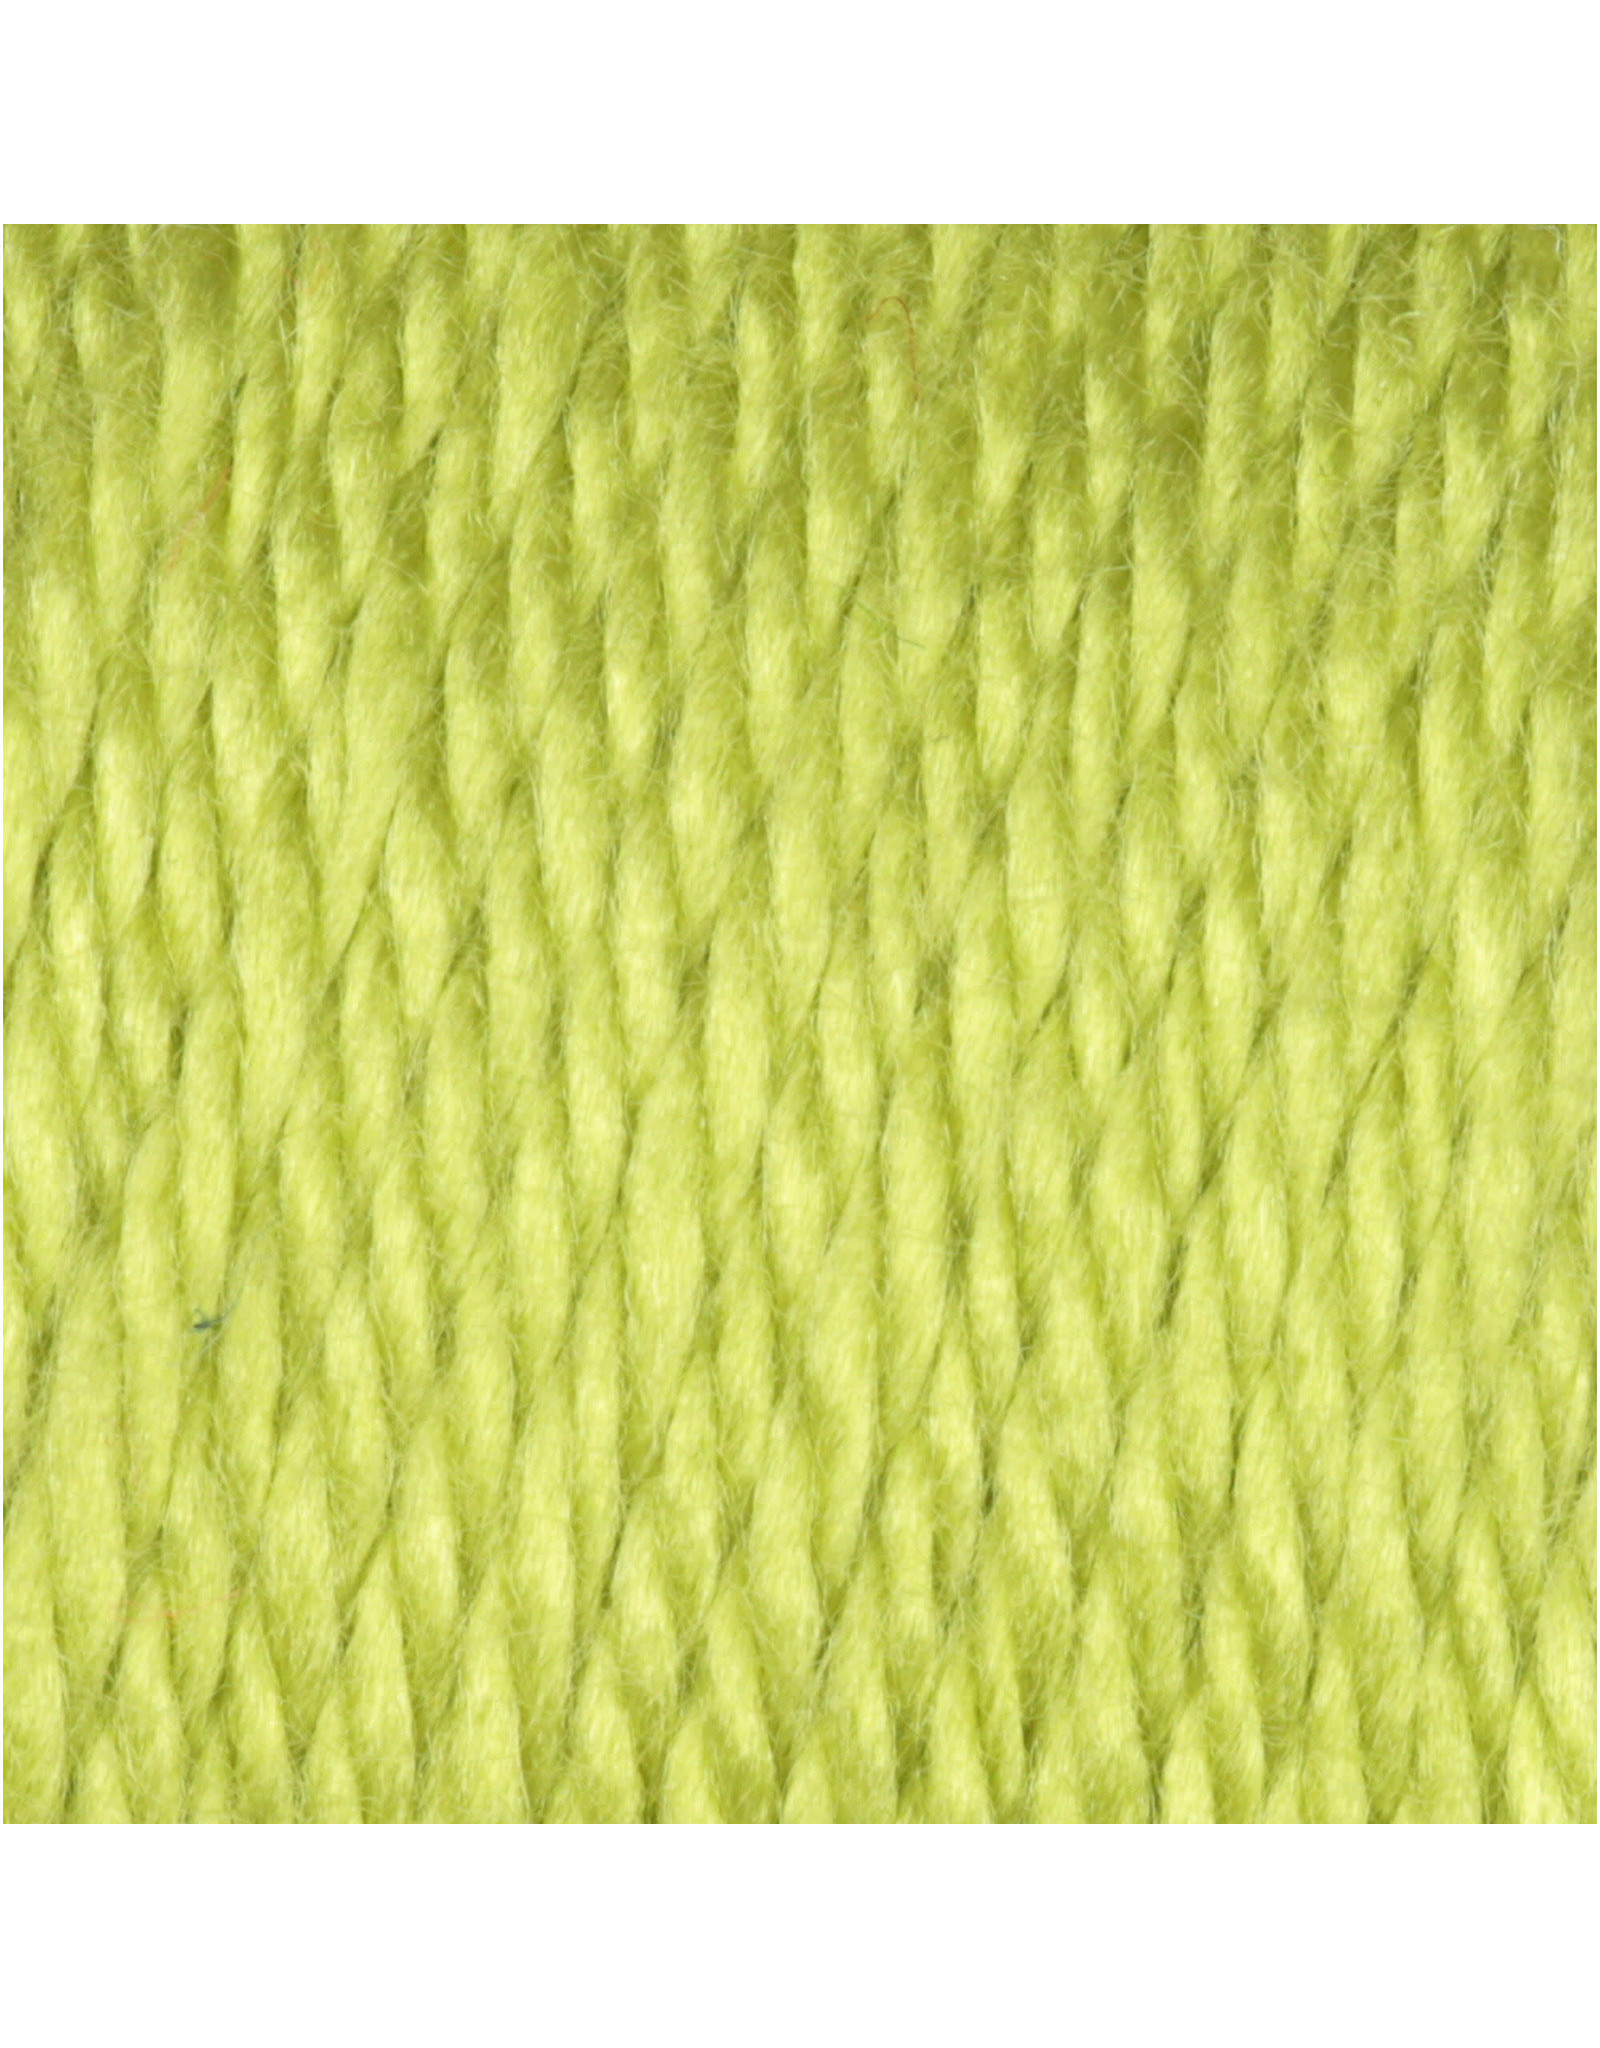 Chartreuse - Simply Soft - Caron